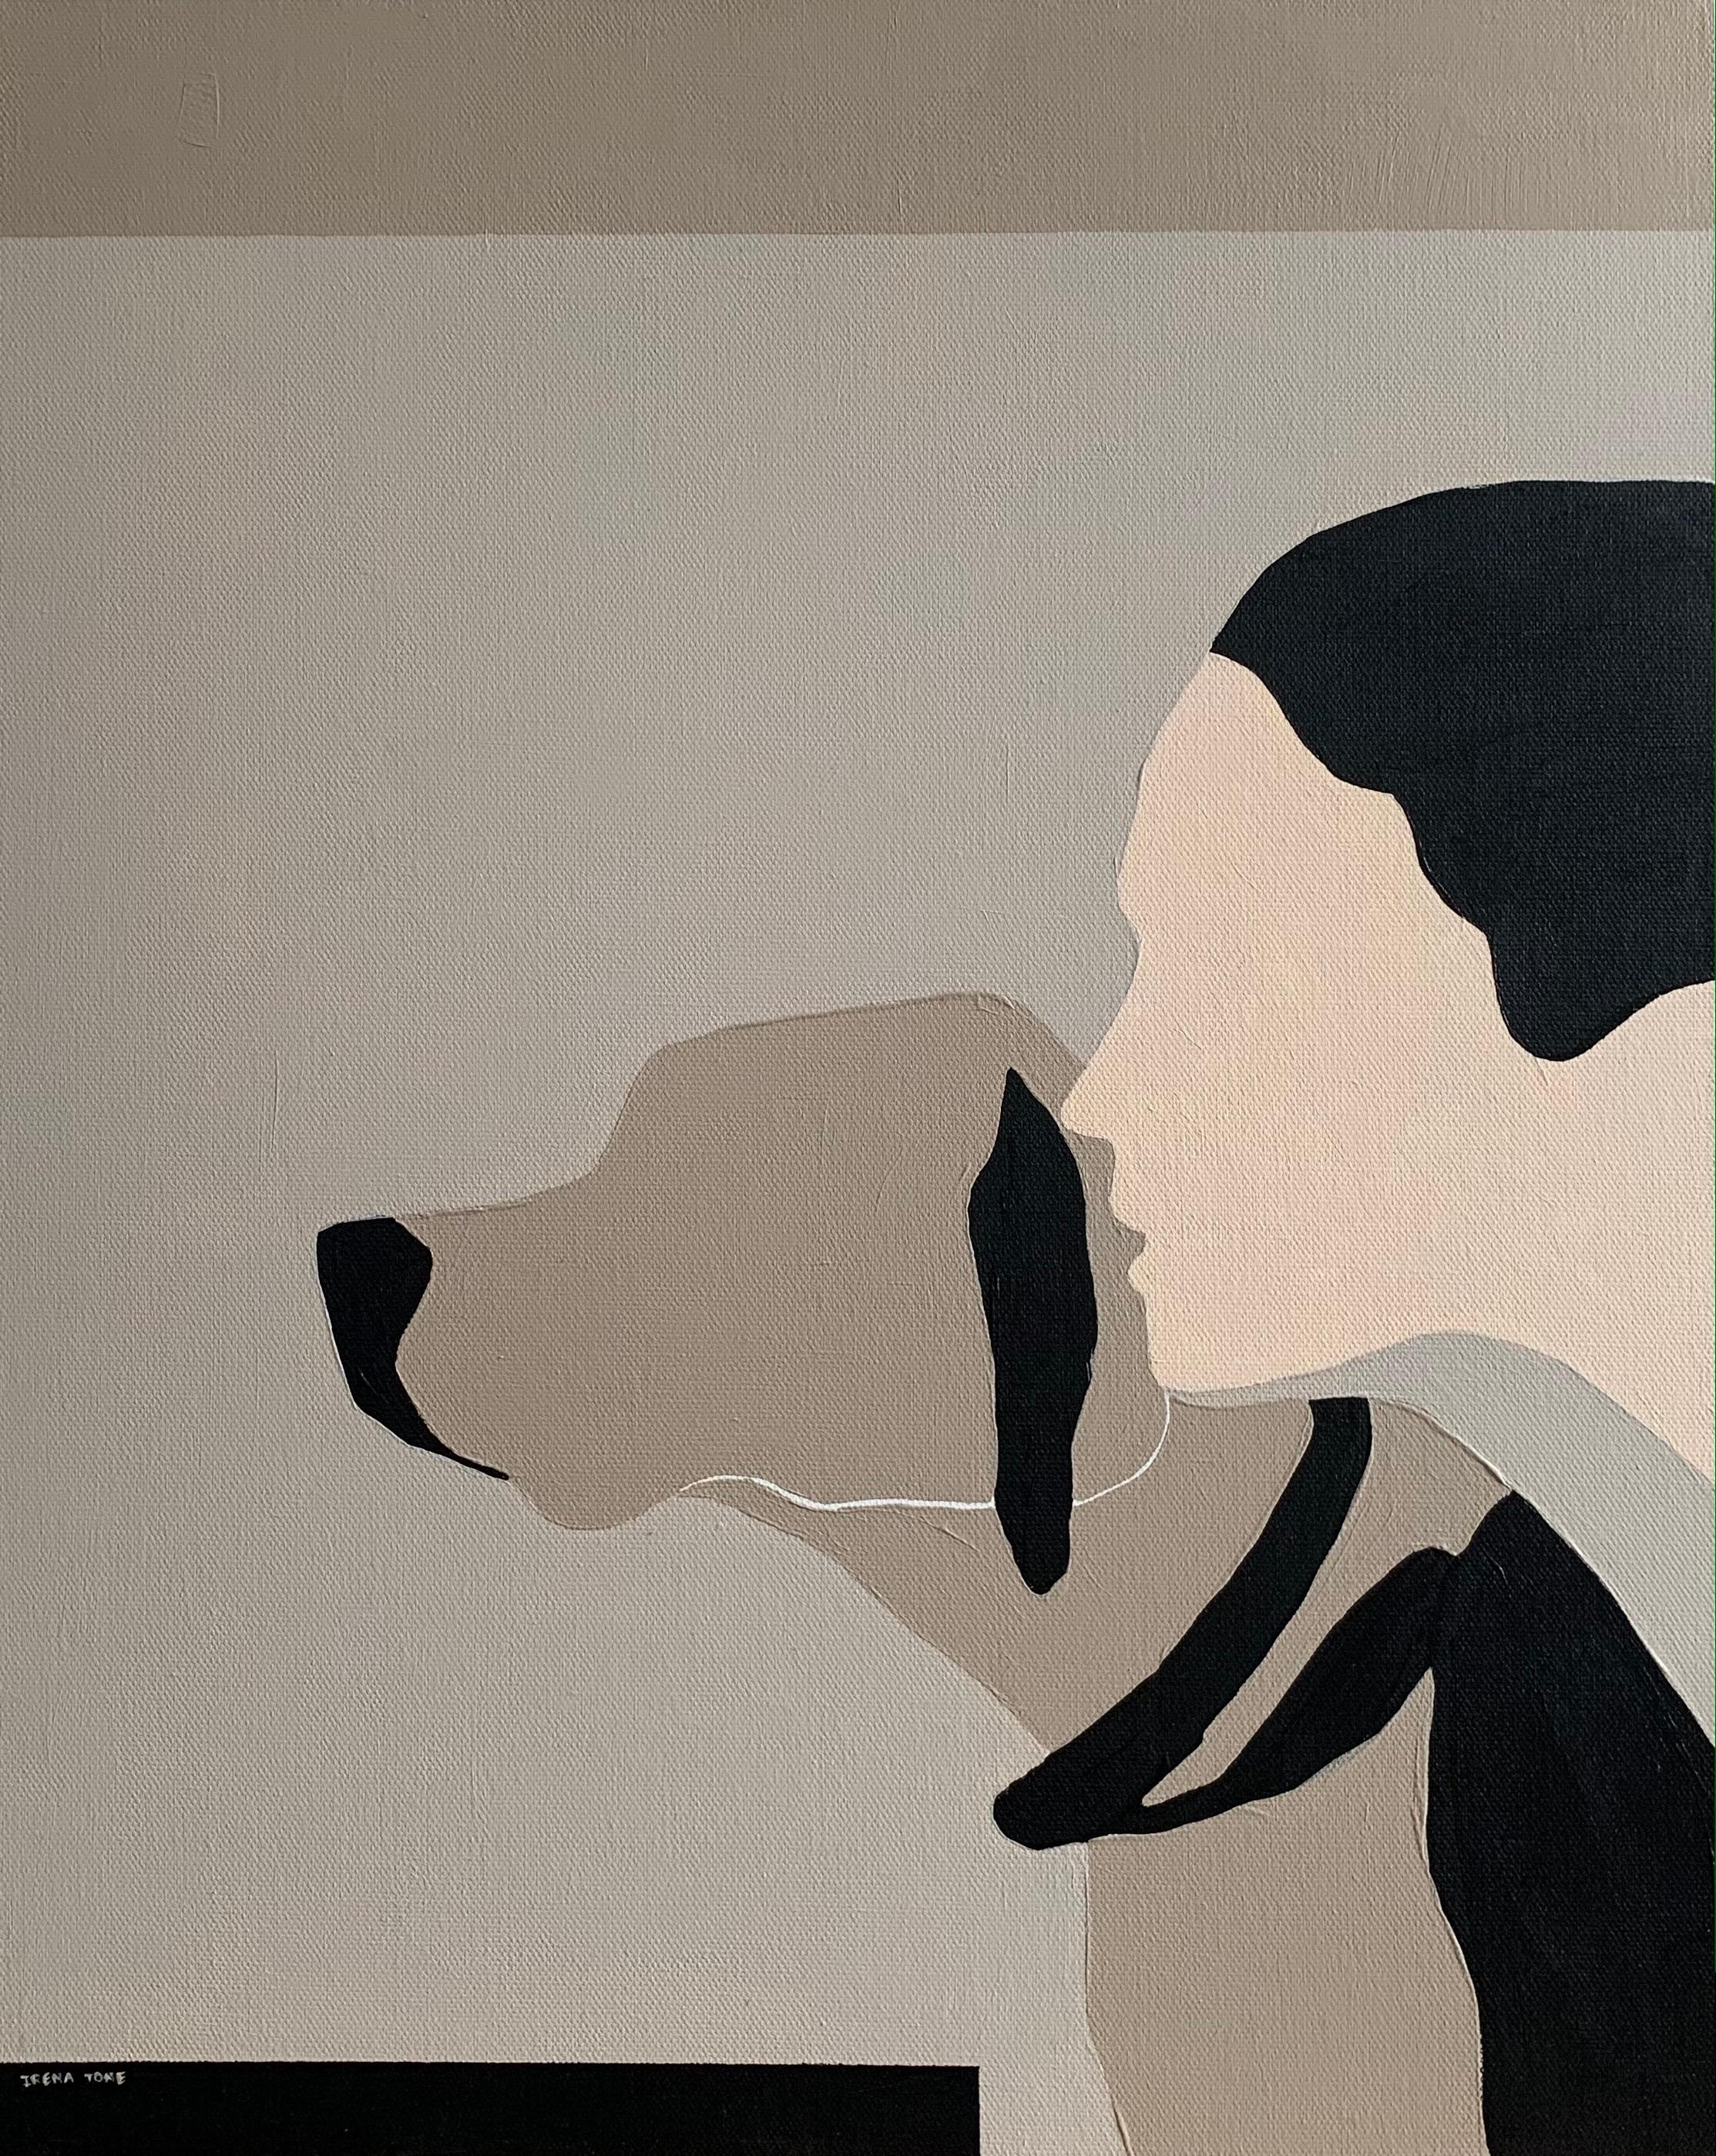 Beige: dog, woman abstract portrait painting, 2021